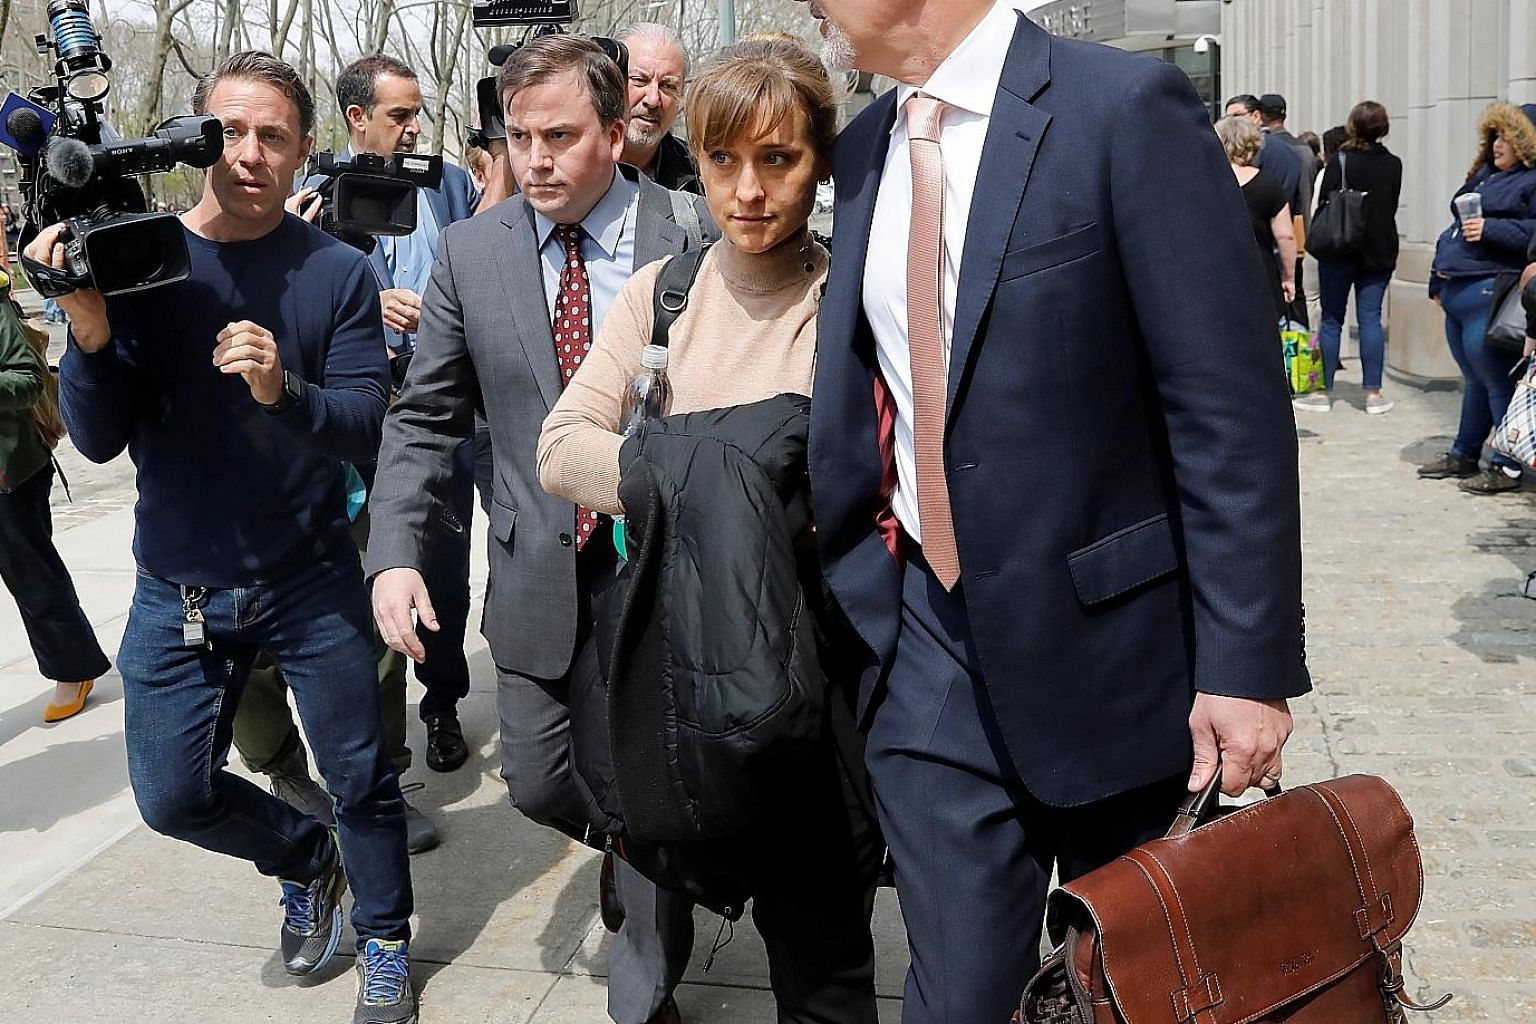 Actress Allison Mack leaving the Brooklyn Federal Courthouse after facing charges regarding sex trafficking and racketeering related to the NXIVM cult case in New York.